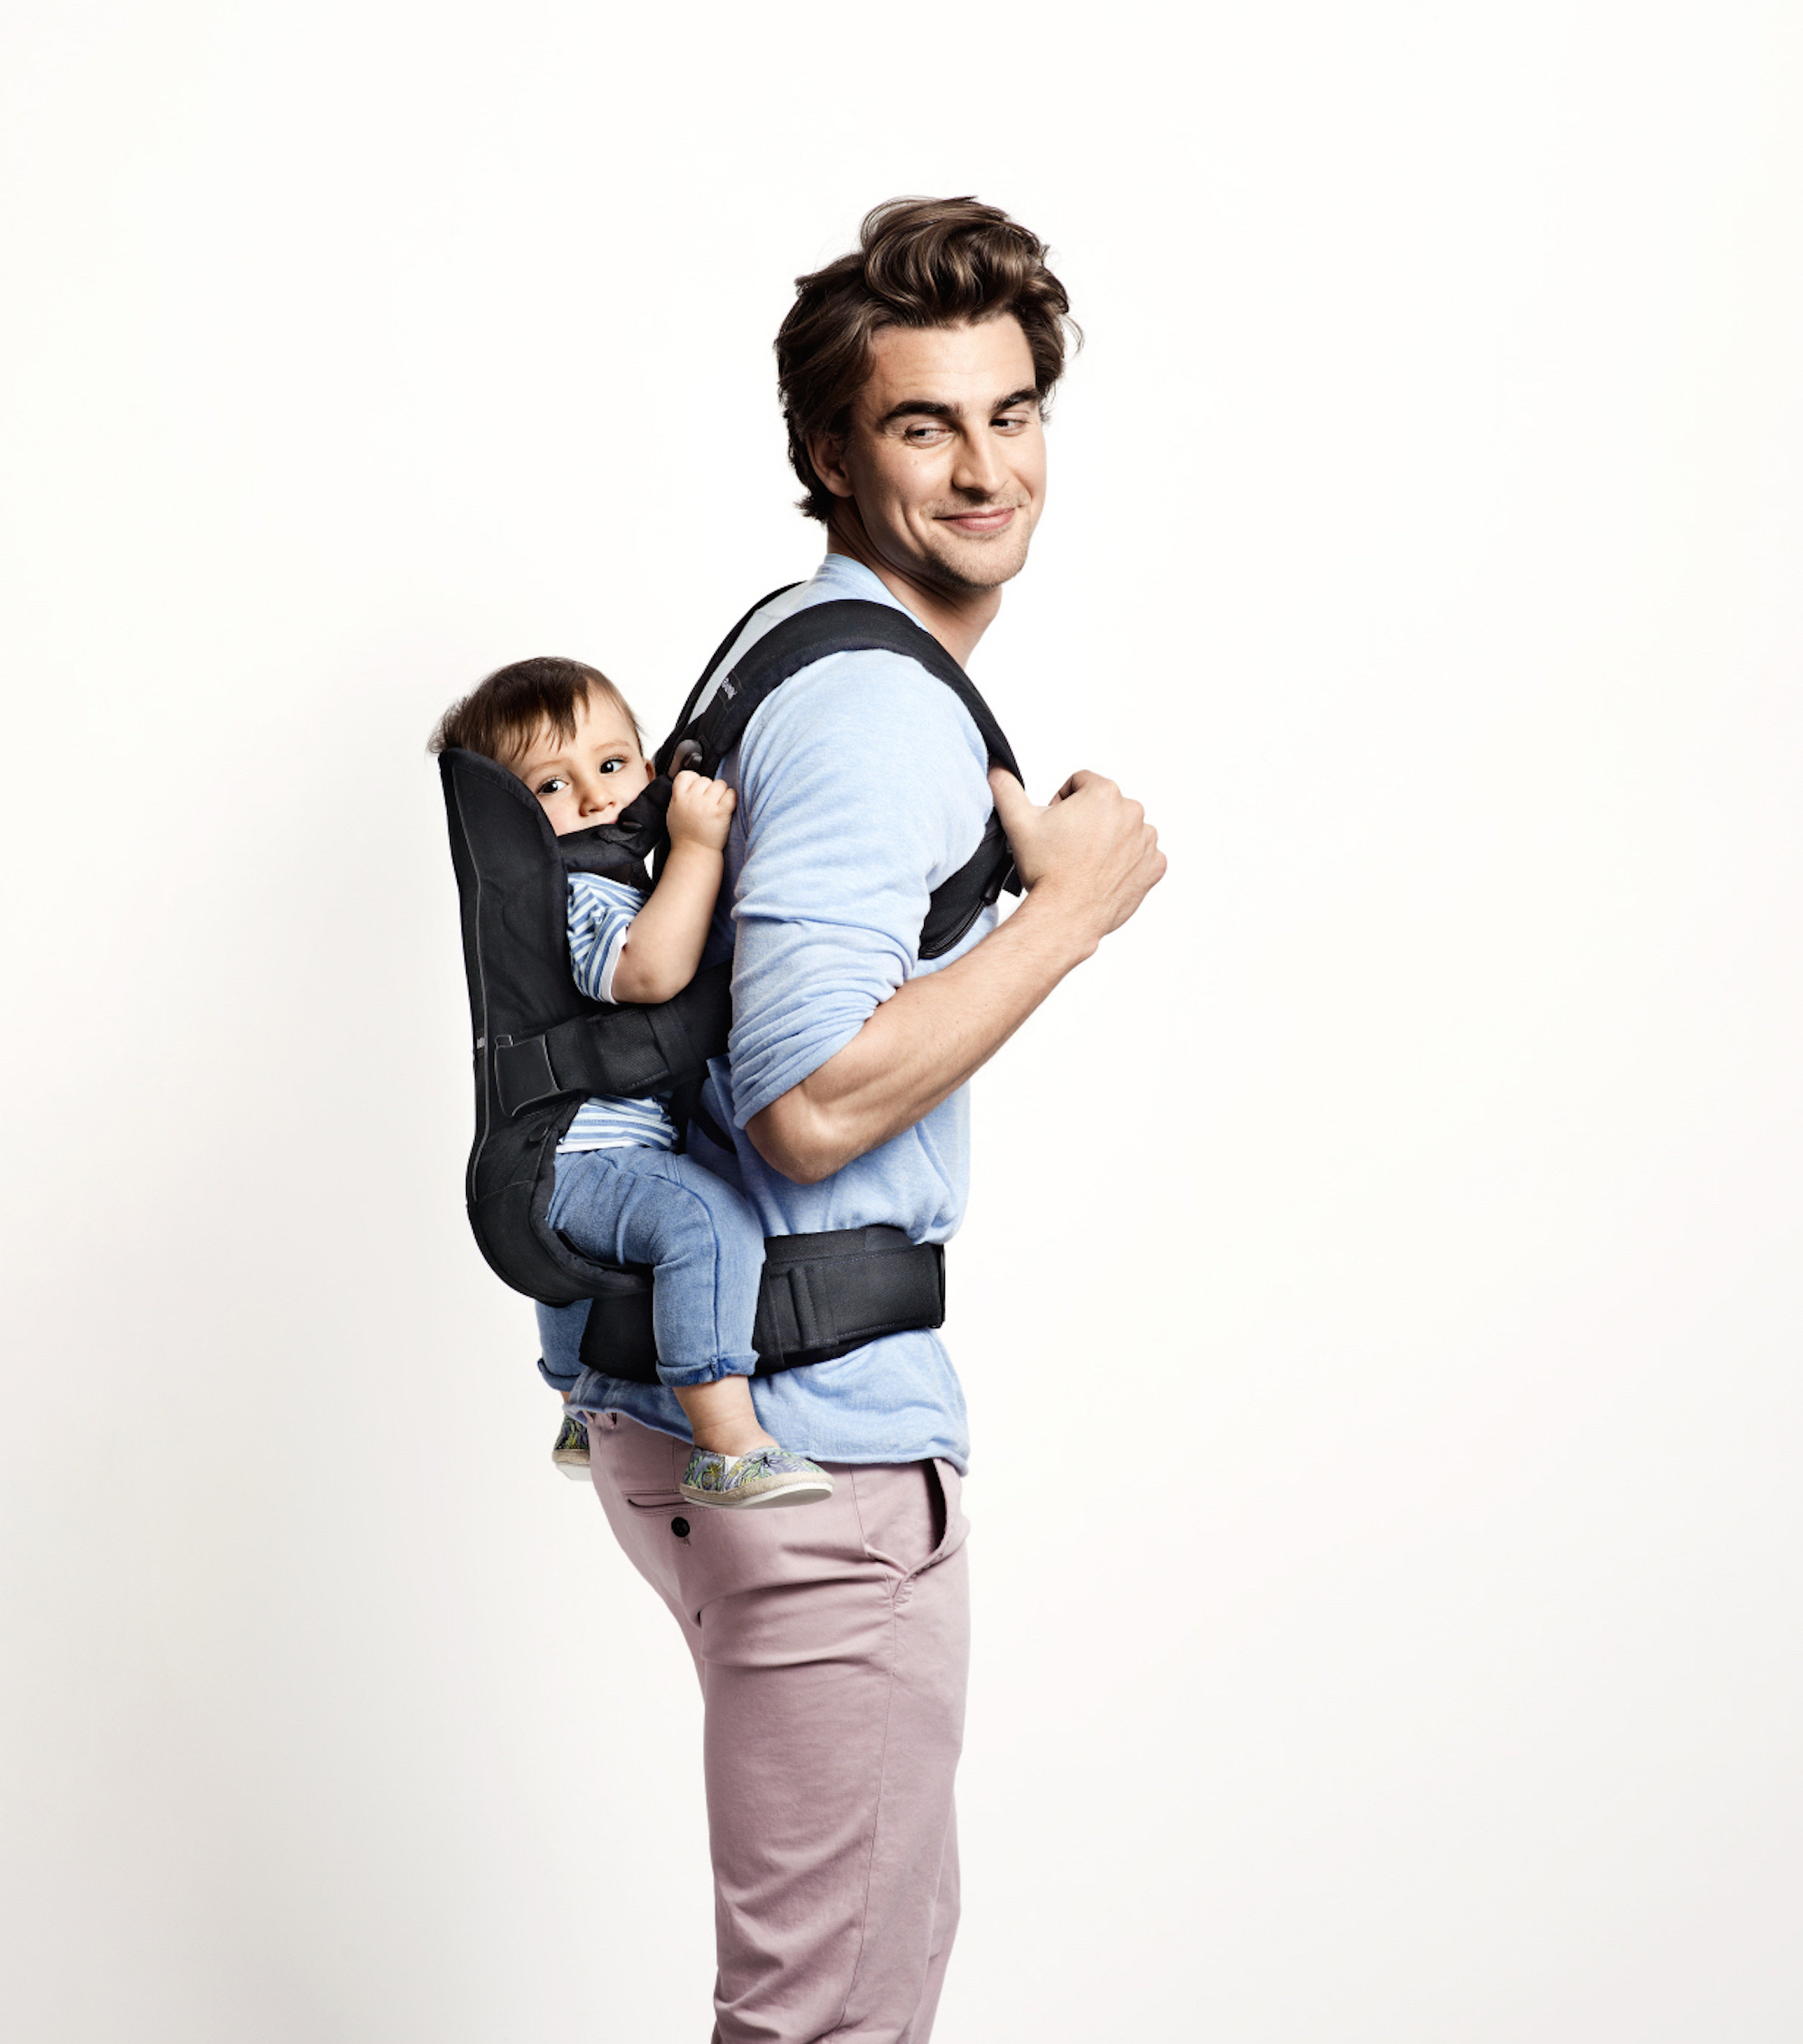 b7b6733e458 BABYBJORN Baby Carrier One Air - Black - Walmart.com